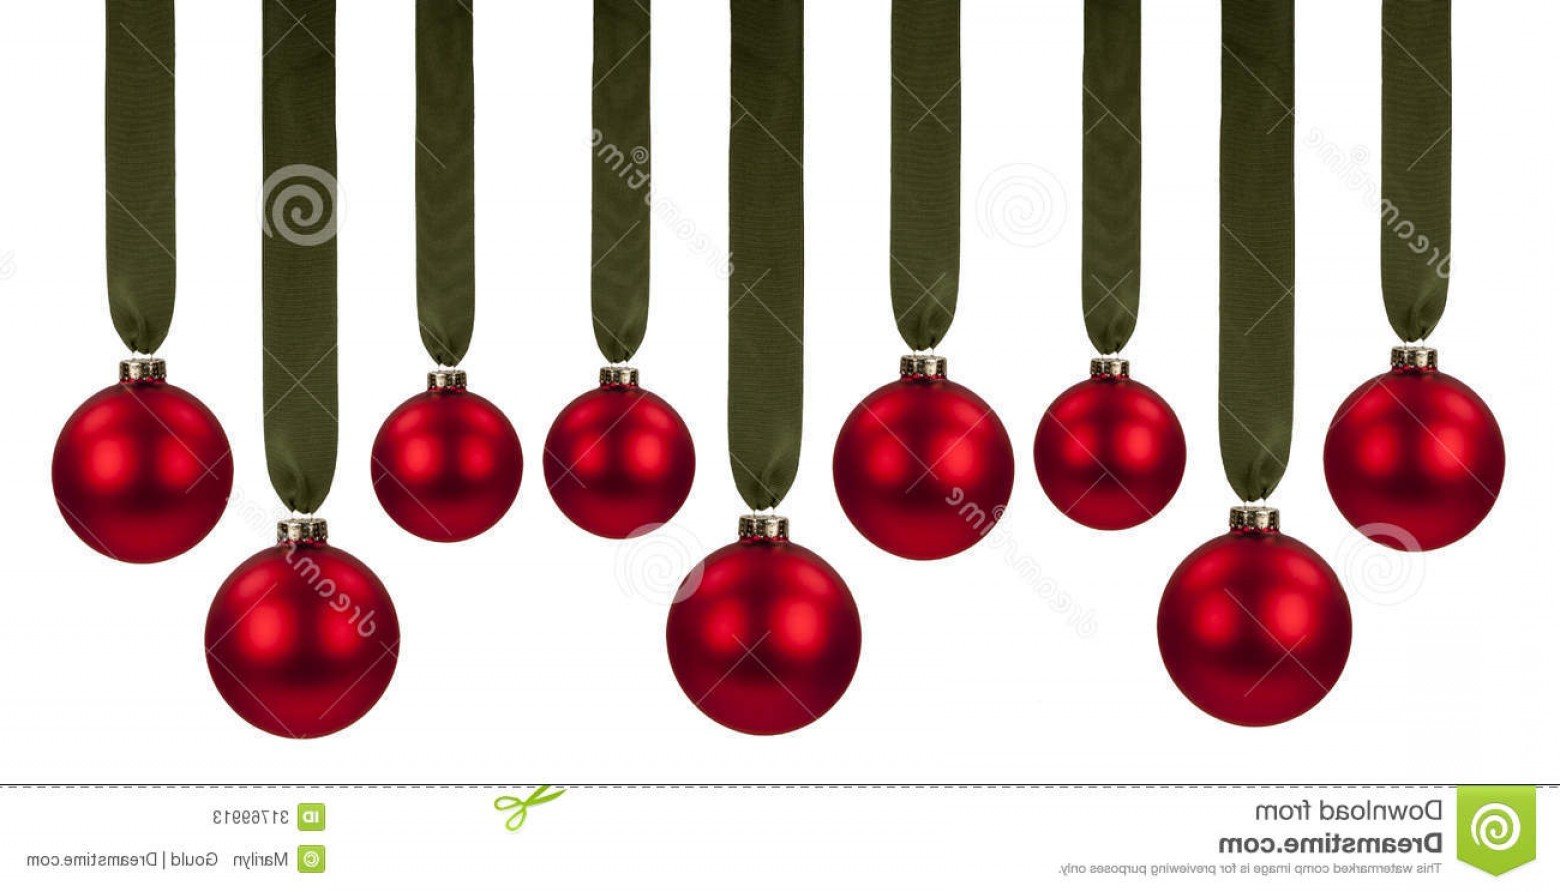 3 Glass Christmas Bulb Vector: Stock Photos Red Christmas Ornaments Multiple Glass Hanging Green Grosgrain Ribbon Isolated White Background Image